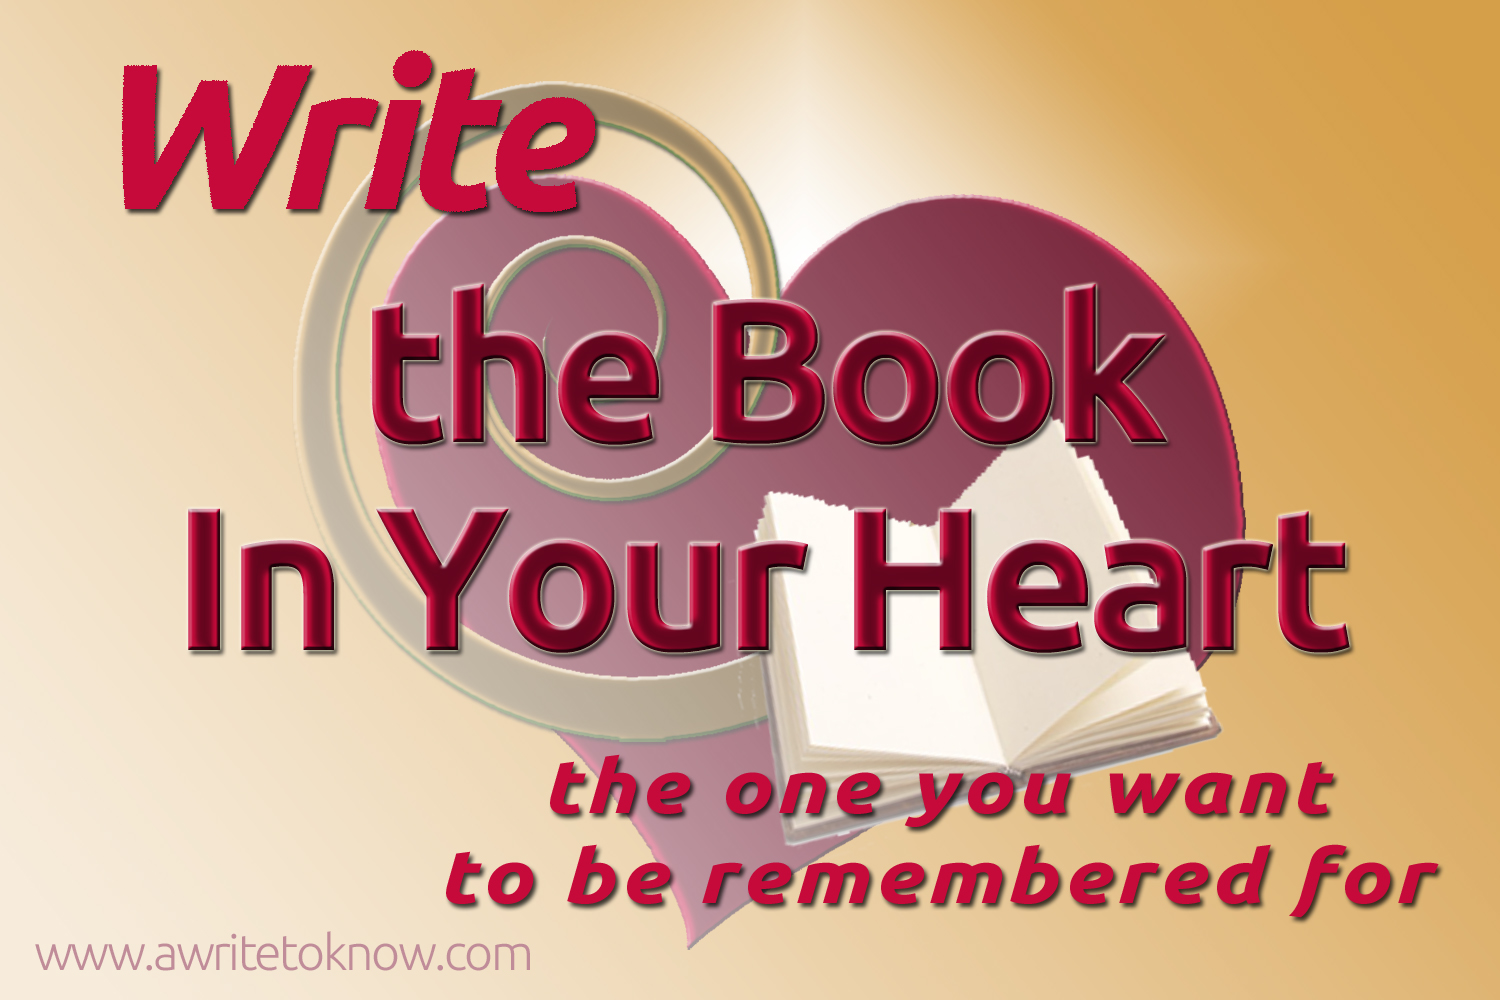 """Ruby heart and spiral that says """"Write the book in your heart, the one you want to be remembered for"""